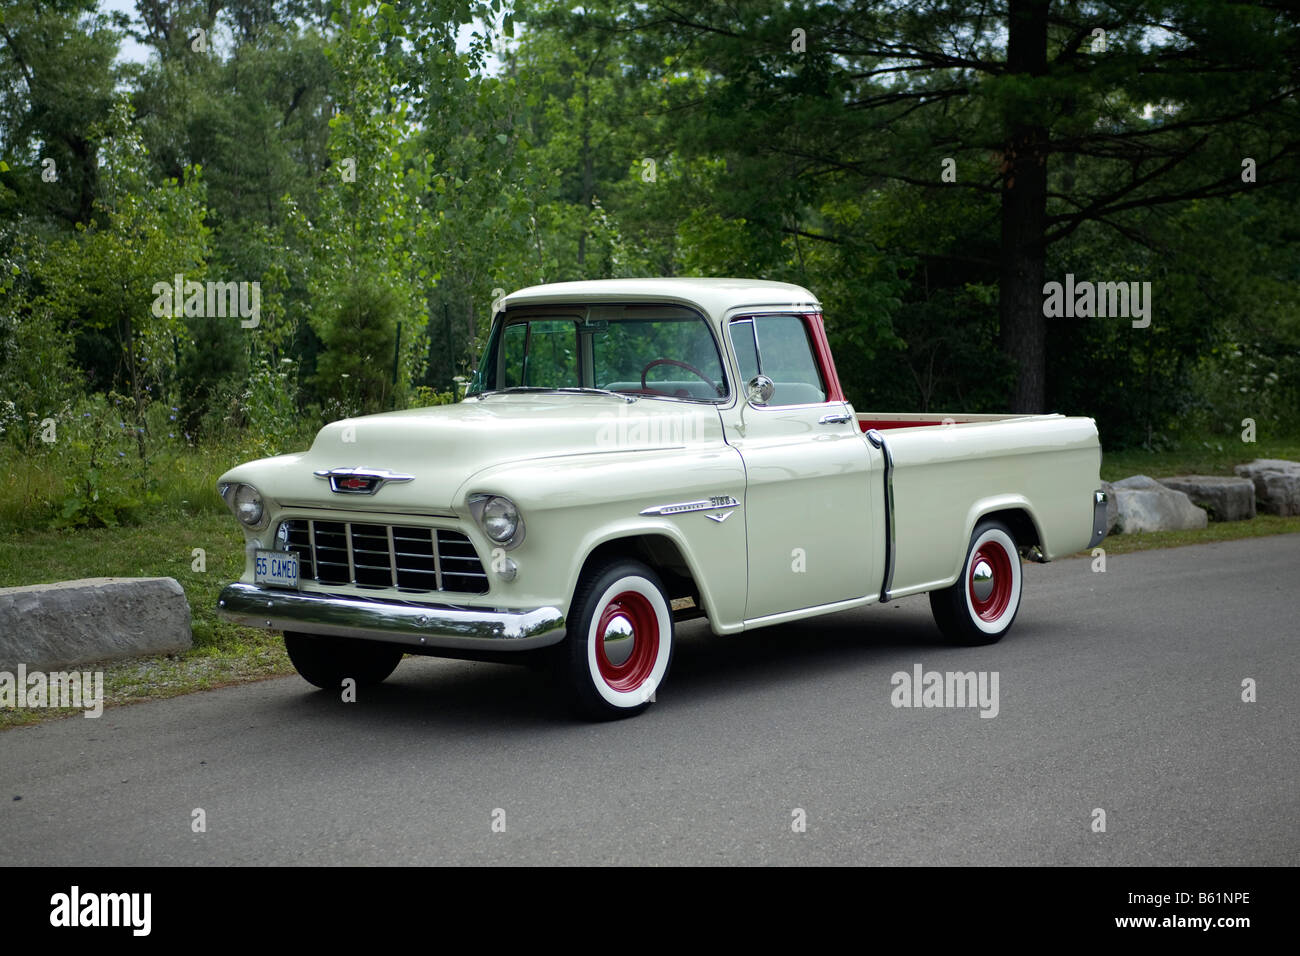 1955 Chevrolet Pickup Stock Photos Chevy Cameo Truck Image